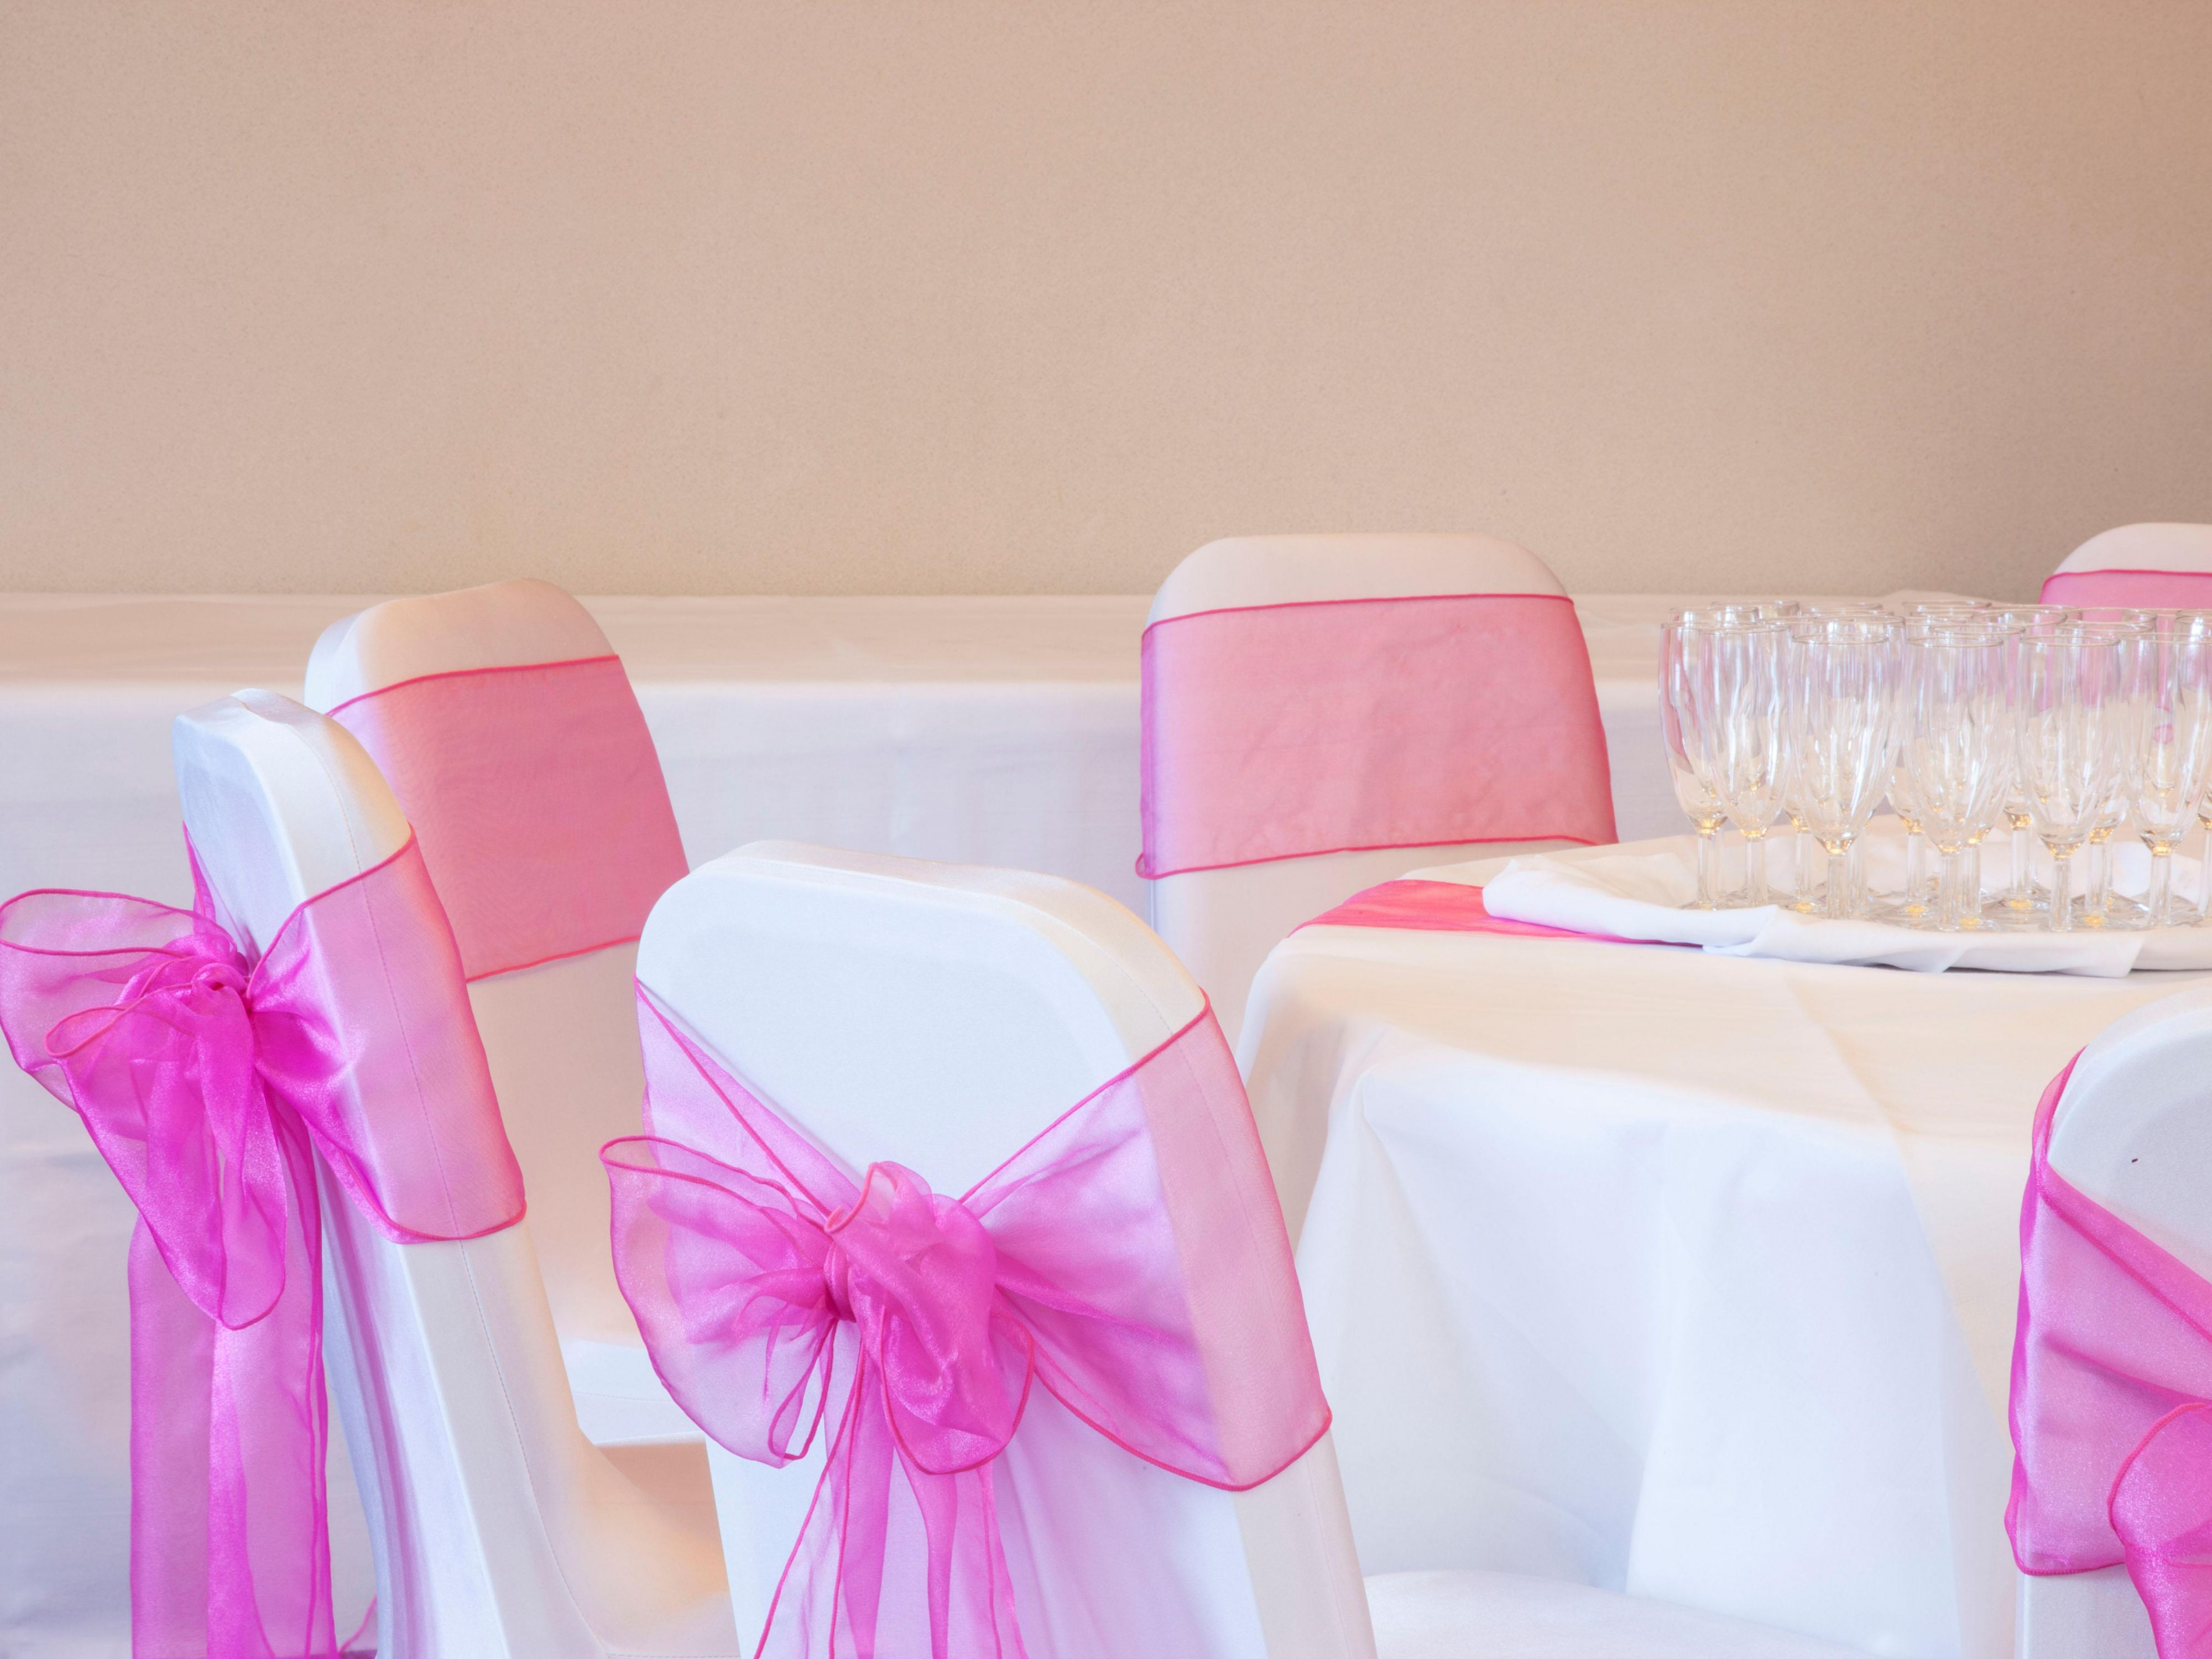 Wye suite wedding with pink bows